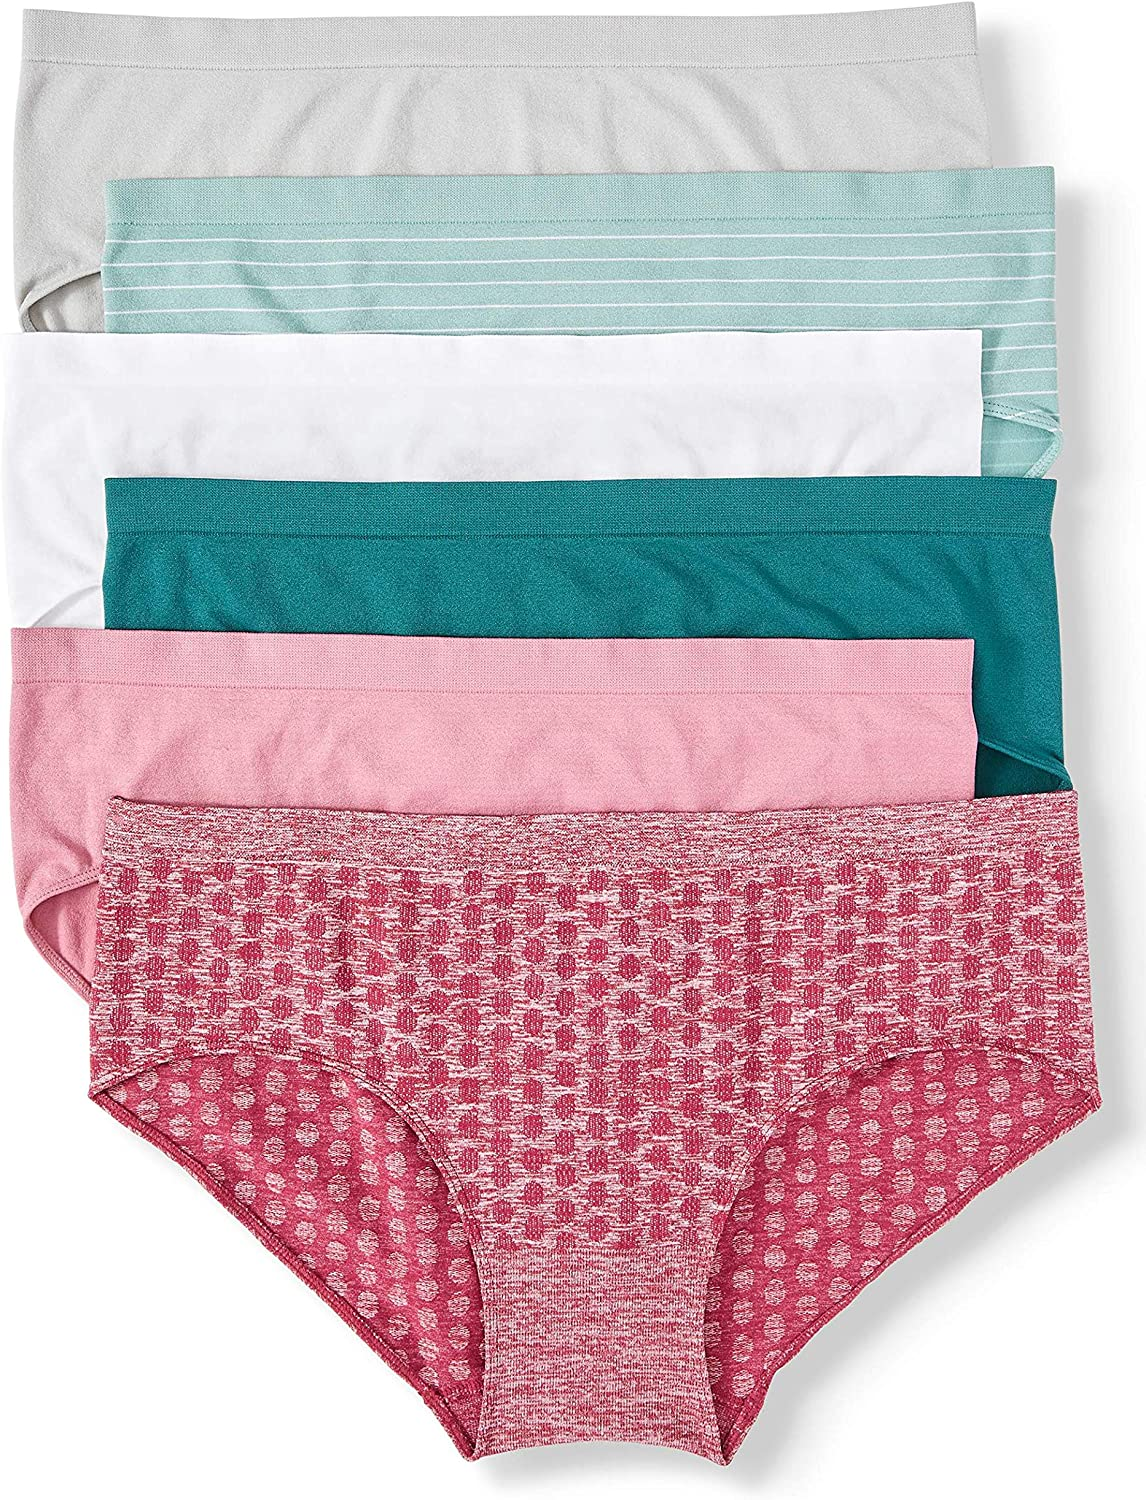 Secret Treasures Women's Plus Seamless Fashion Hipster Panties, 6 Pack Size 4X, Assorted, 14